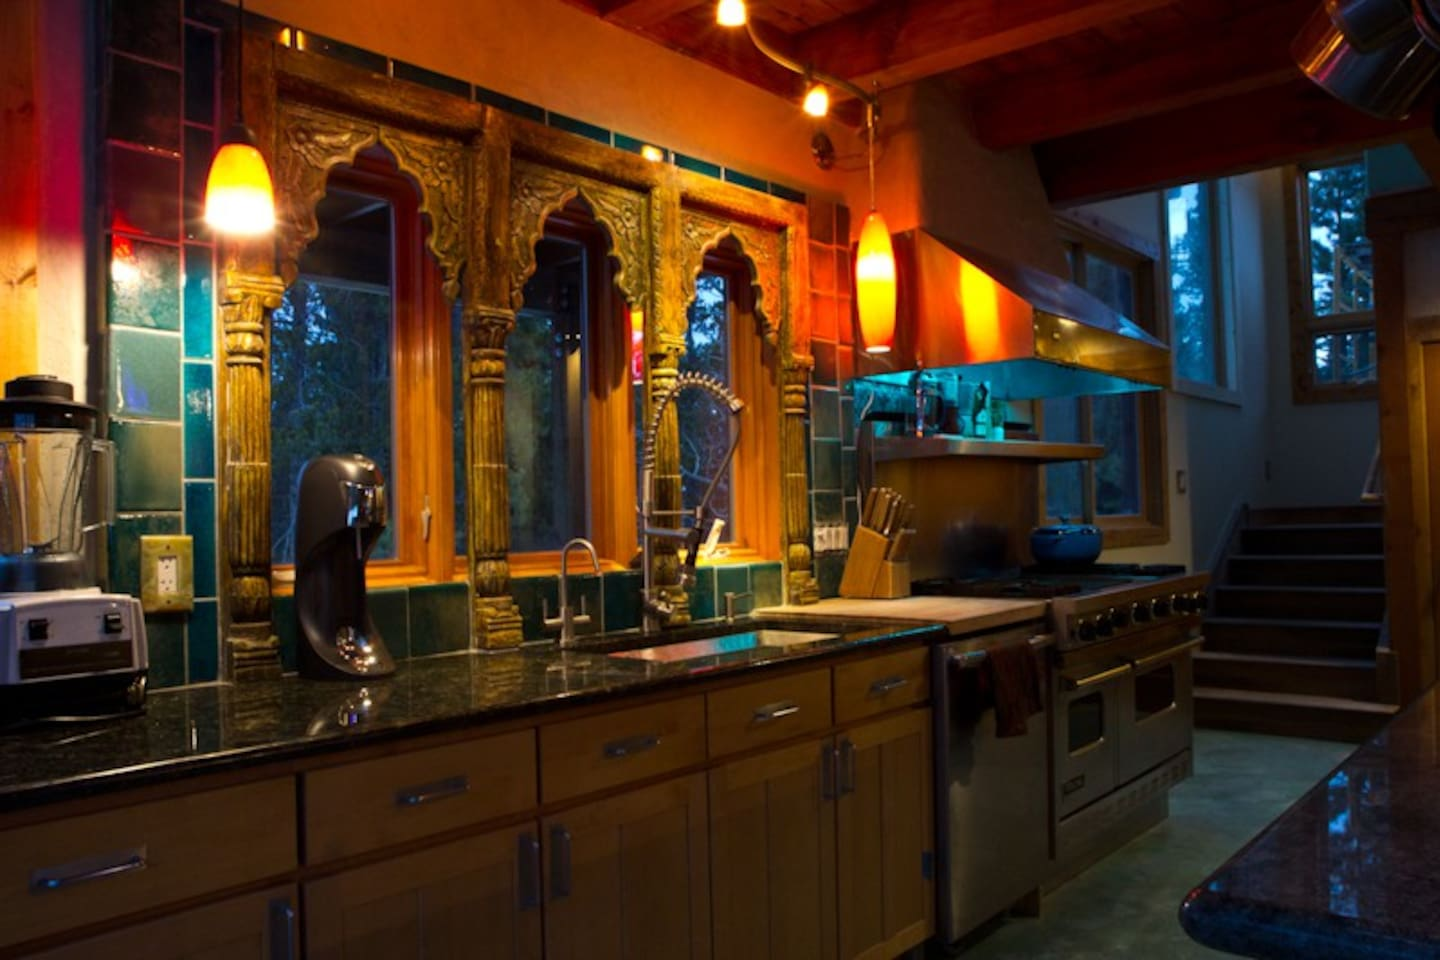 Kitchen in the Casita